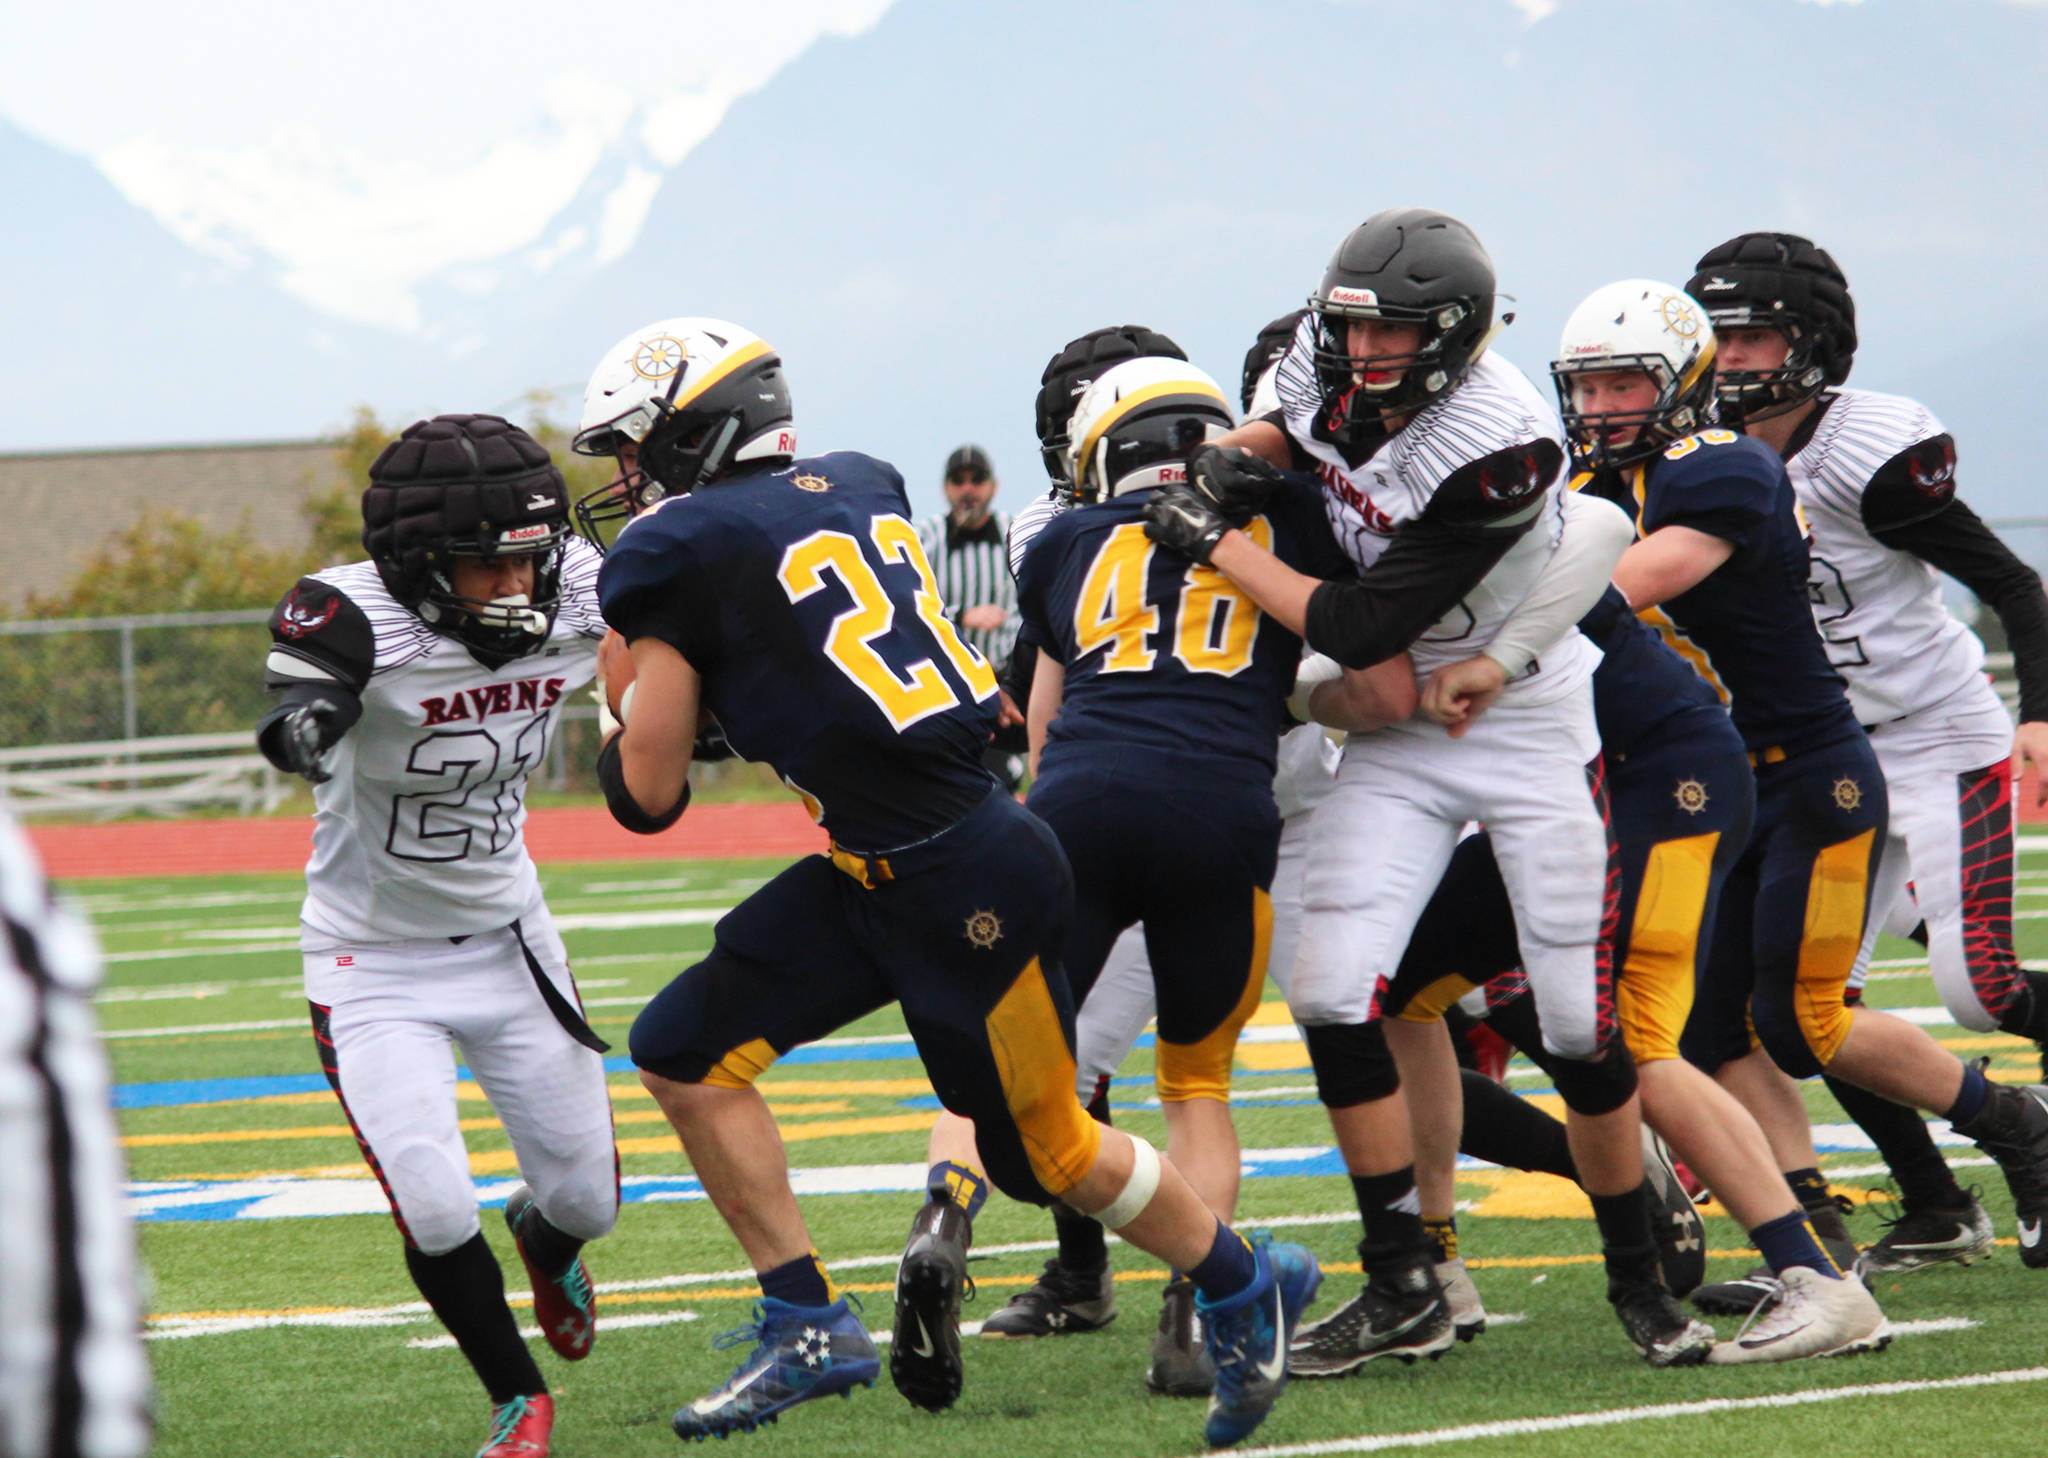 Homer sophomore Noah Fisk runs the ball during Homer's football game against Ben Eielson High School on Saturday, Oct. 7, 2017 in Homer, Alaska. The Mariners beat the Ravens 33-21 and will head to the ASAA First National Bowl Series Division III Championship. (Photo by Megan Pacer/Homer News)